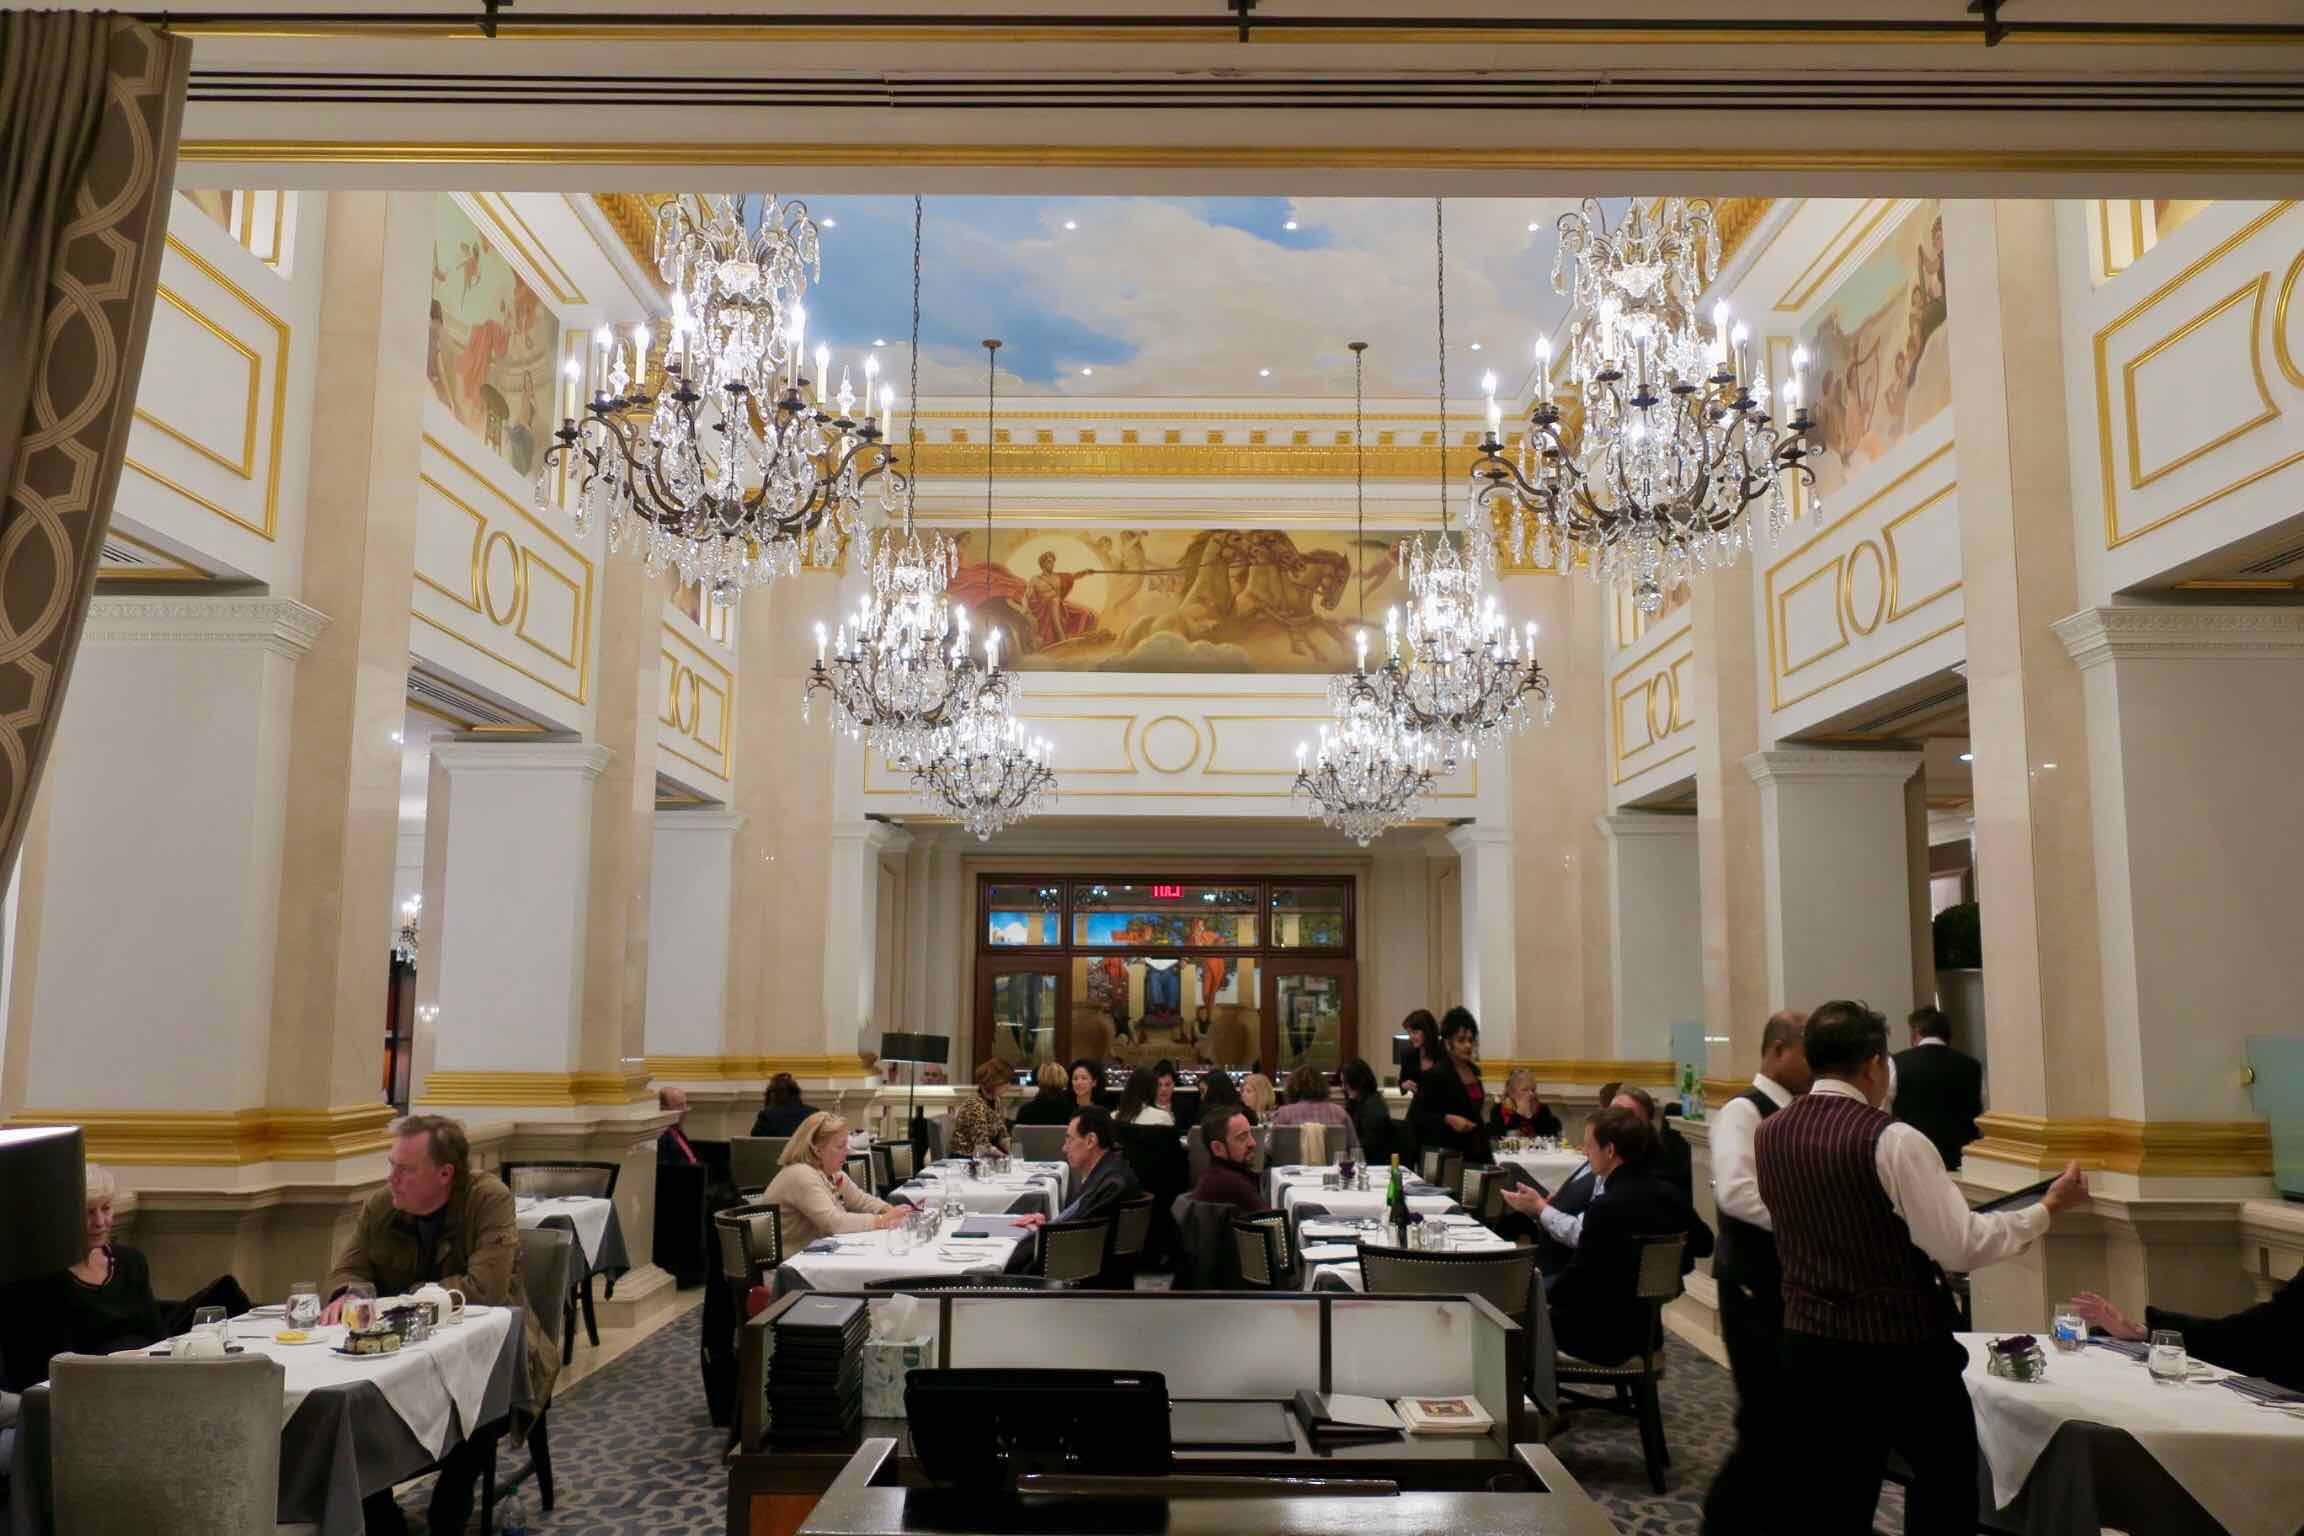 The St. Regis New York restaurant